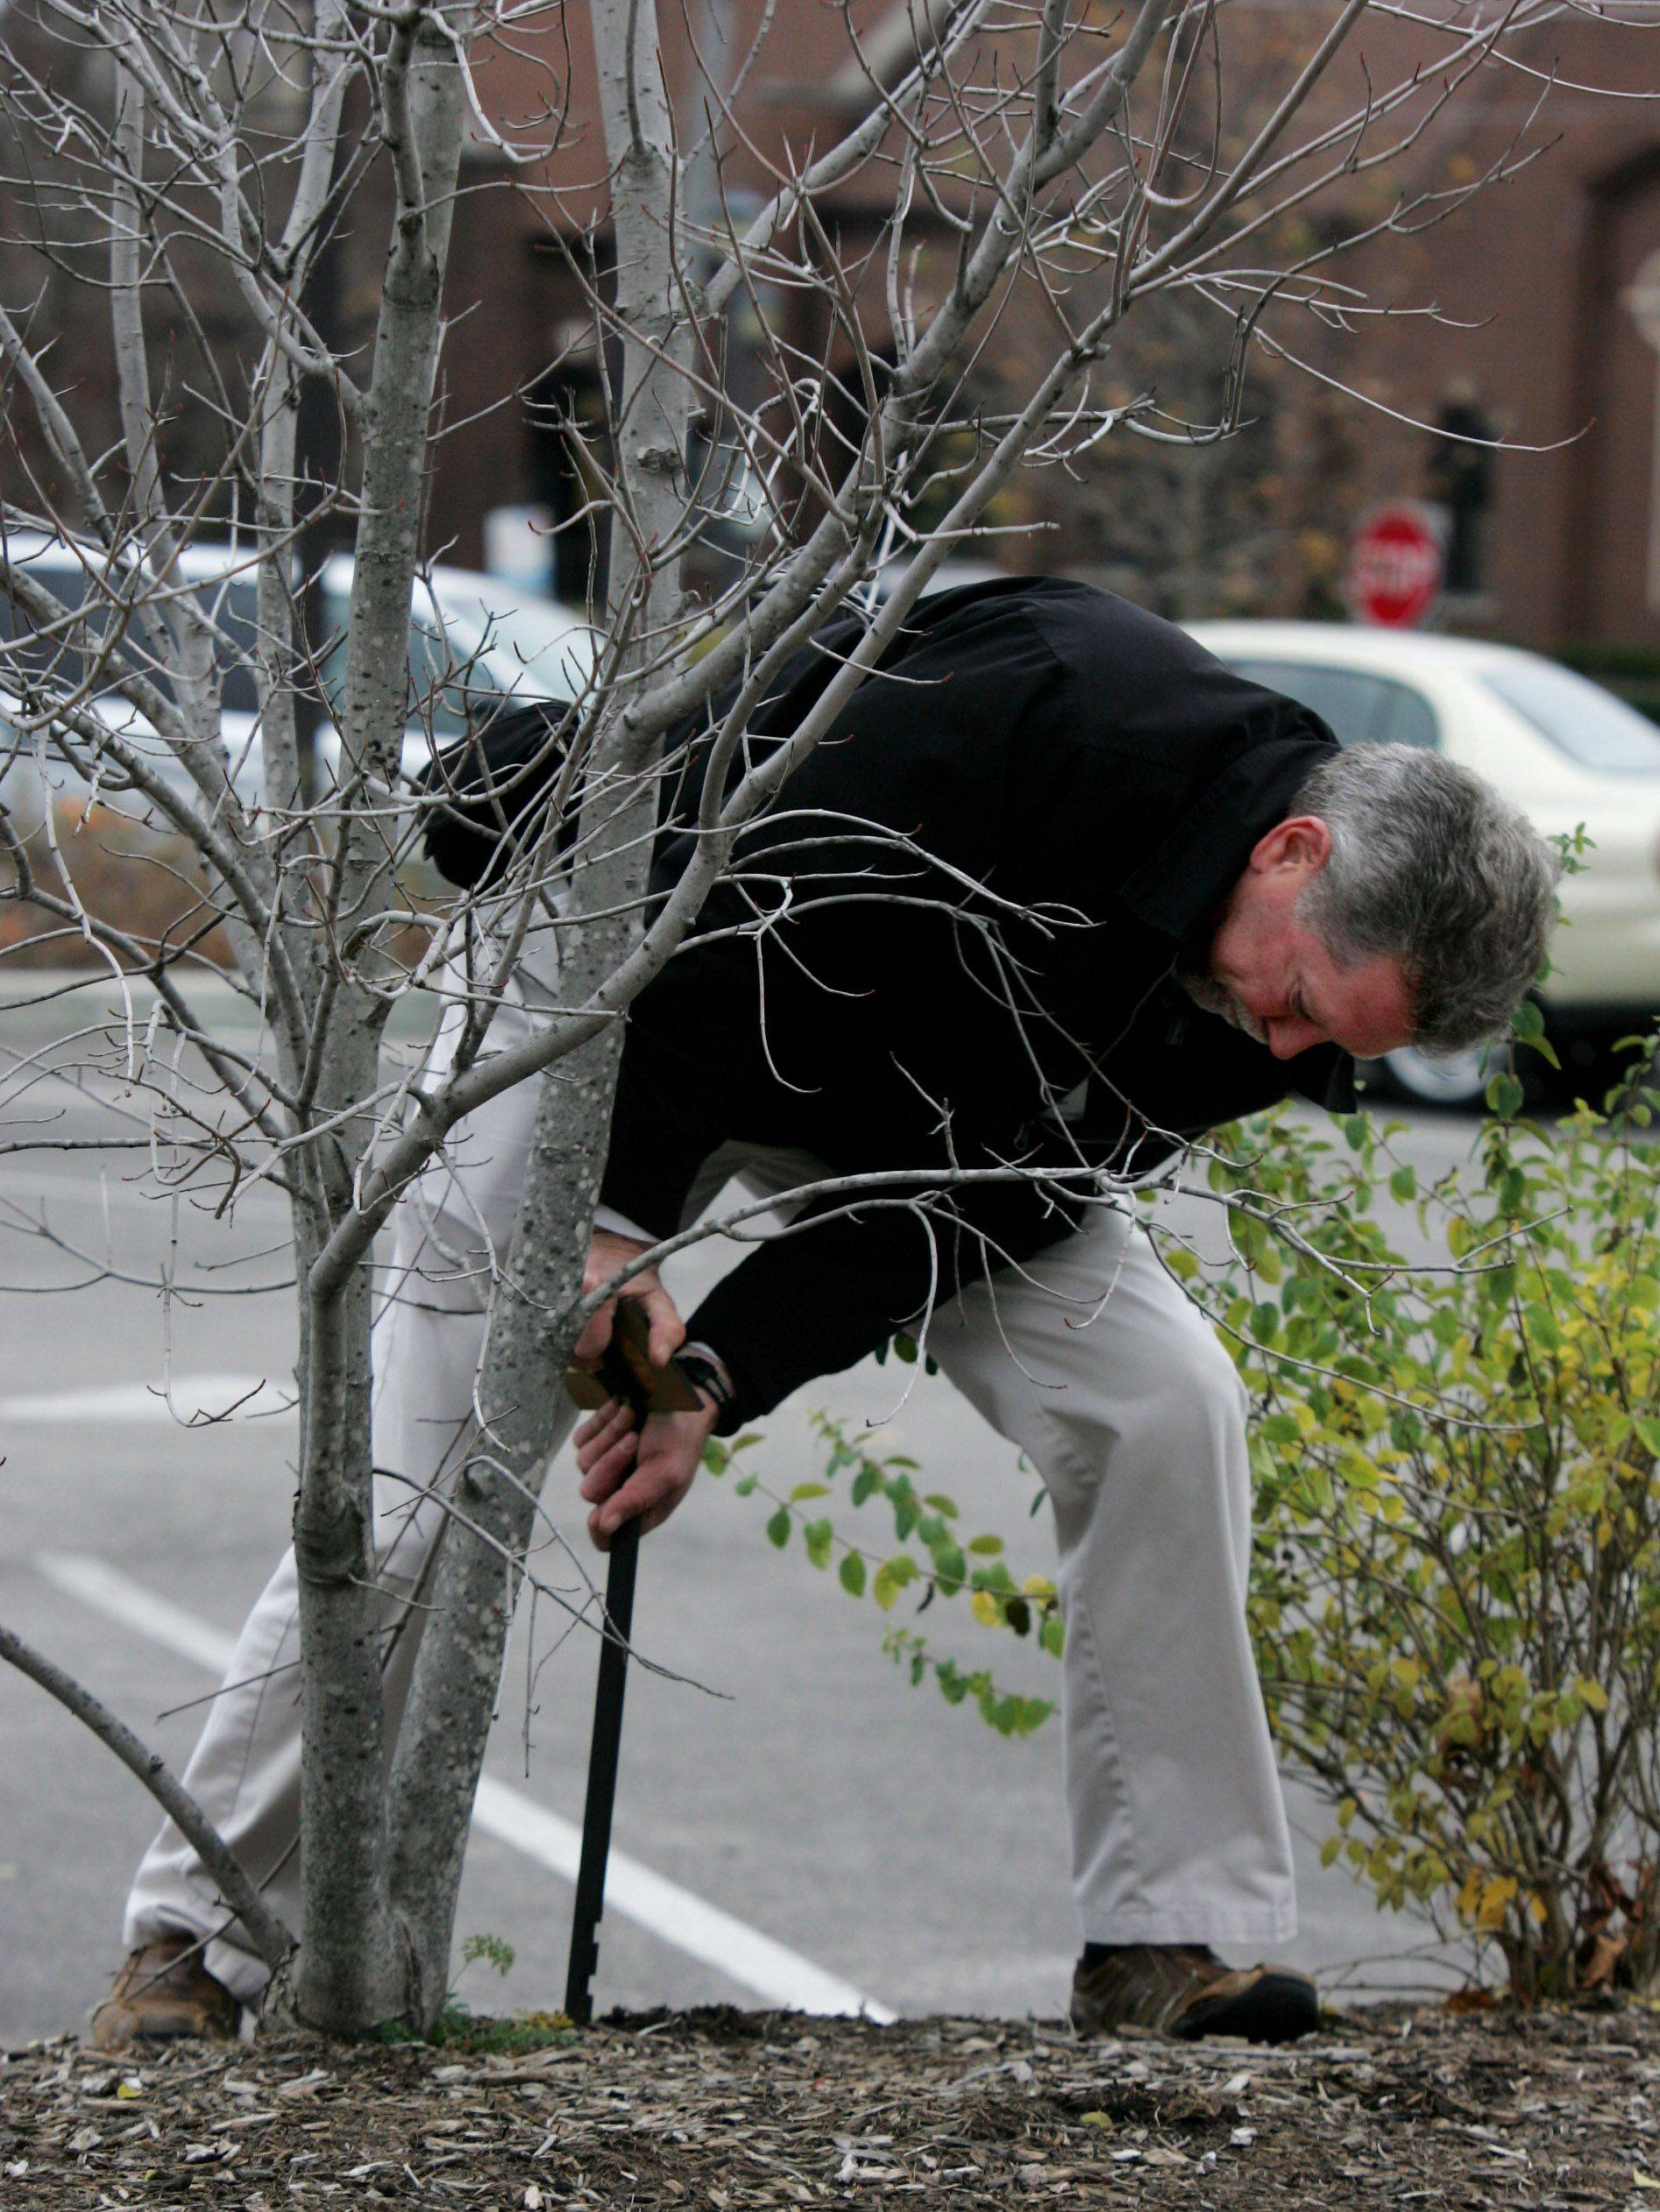 Maintenance manager Gary Murphy installs sponsored plaques at trees outside the Cook Park Library in Libertyville. Library officials are raising revenue by selling naming rights to trees, books, shelves and even rooms.